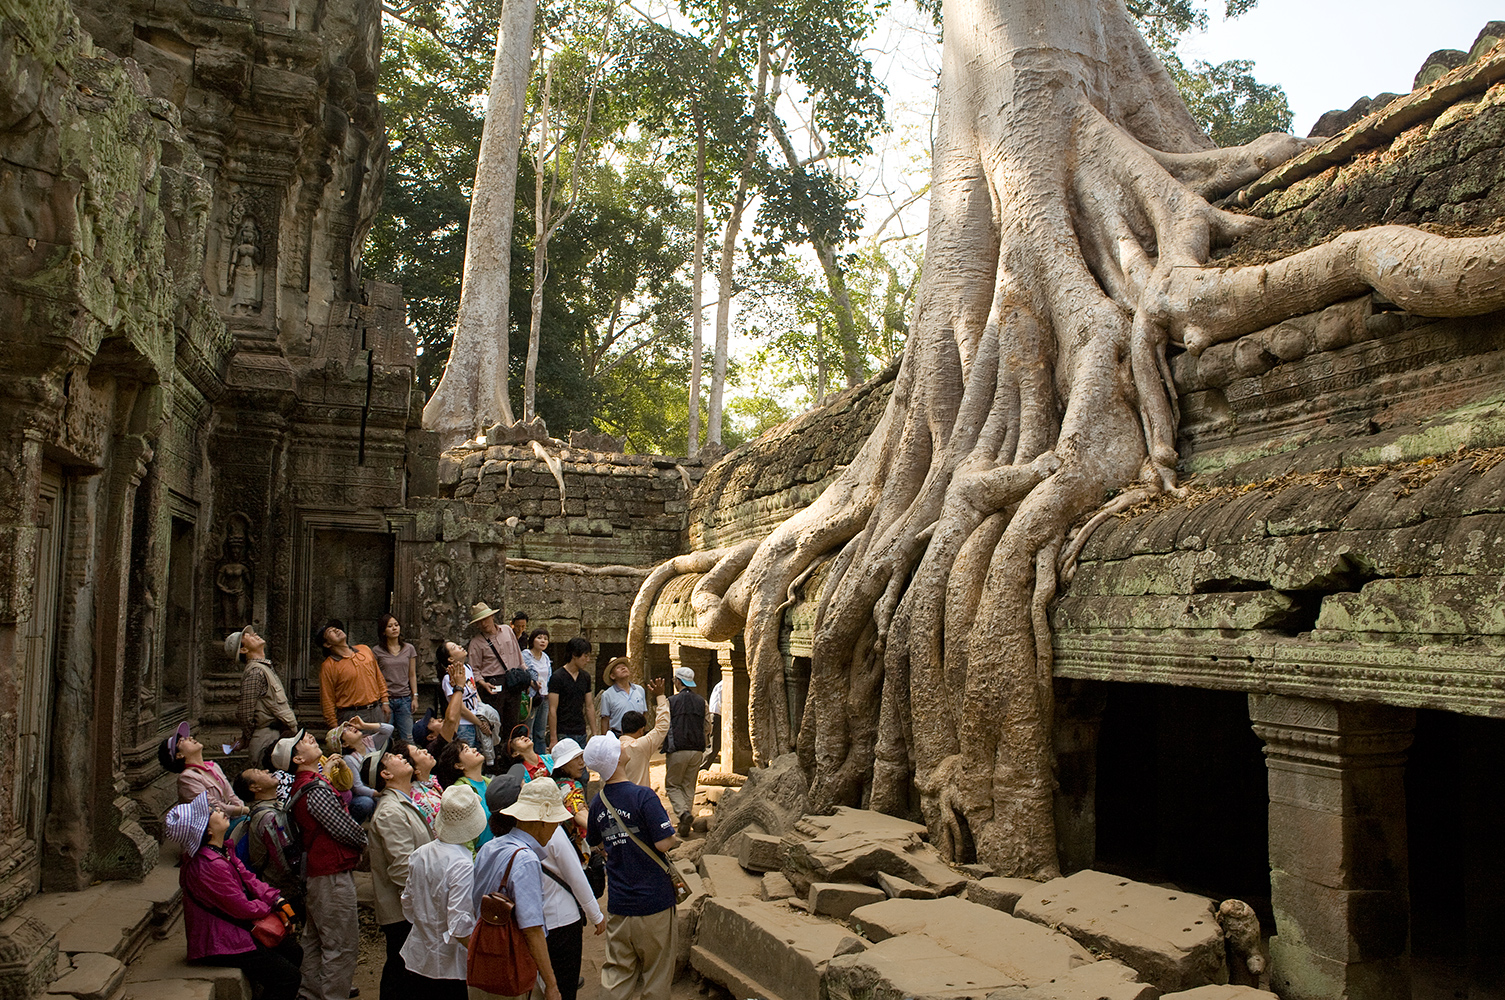 A tour group looks up as their guide describes a tree at Ta Prohm in Angkor, Cambodia.